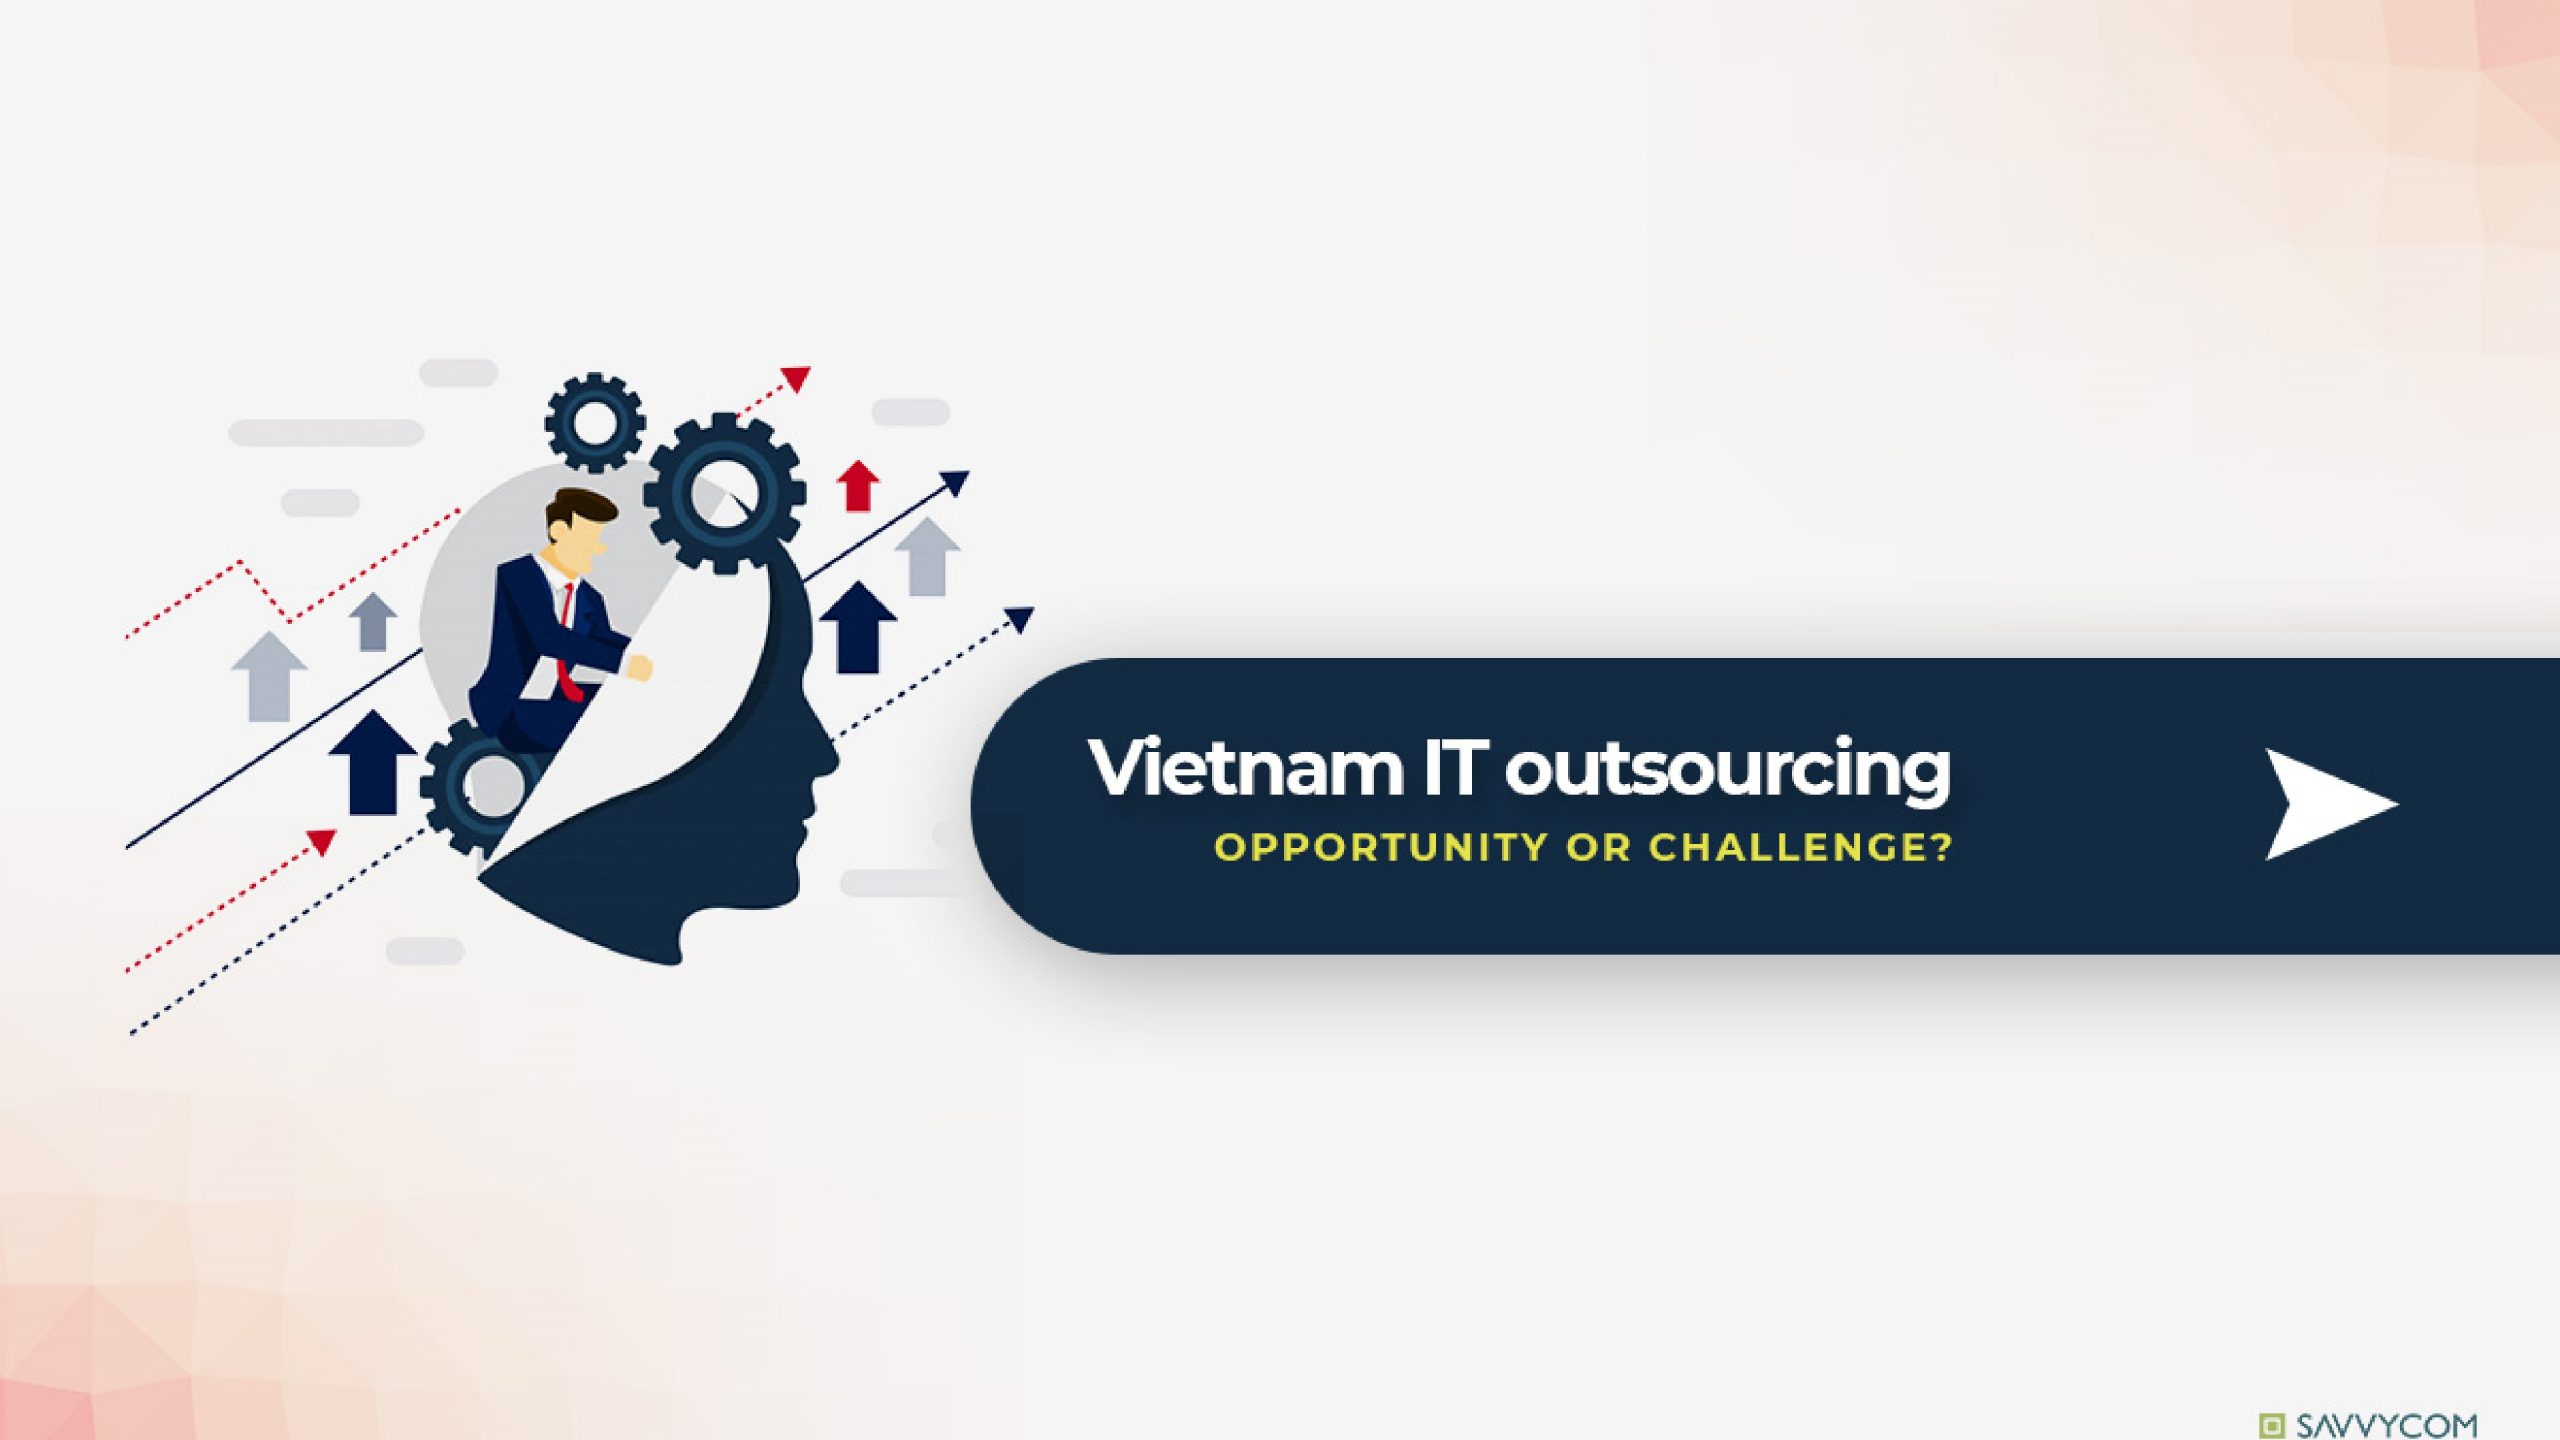 Vietnam IT outsourcing – Opportunity or Challenge?